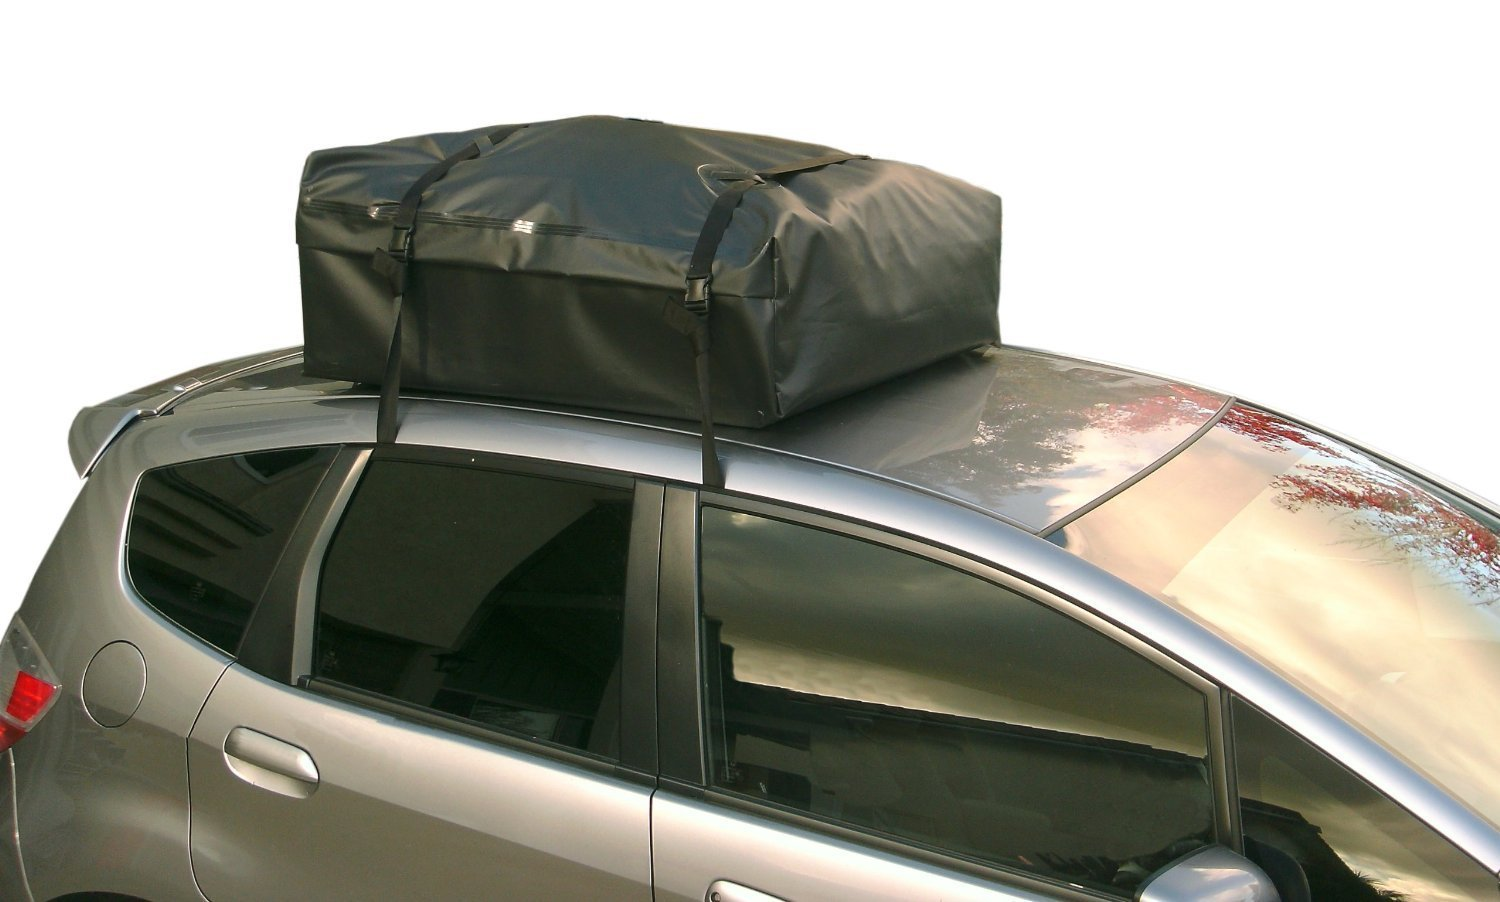 RoofBag Rooftop Cargo Carrier   Waterproof   Made in USA   1 Year Warranty   Fits All Cars: with Side Rails, Cross Bars or No Rack   Includes Heavy Duty Straps by RoofBag (Image #4)